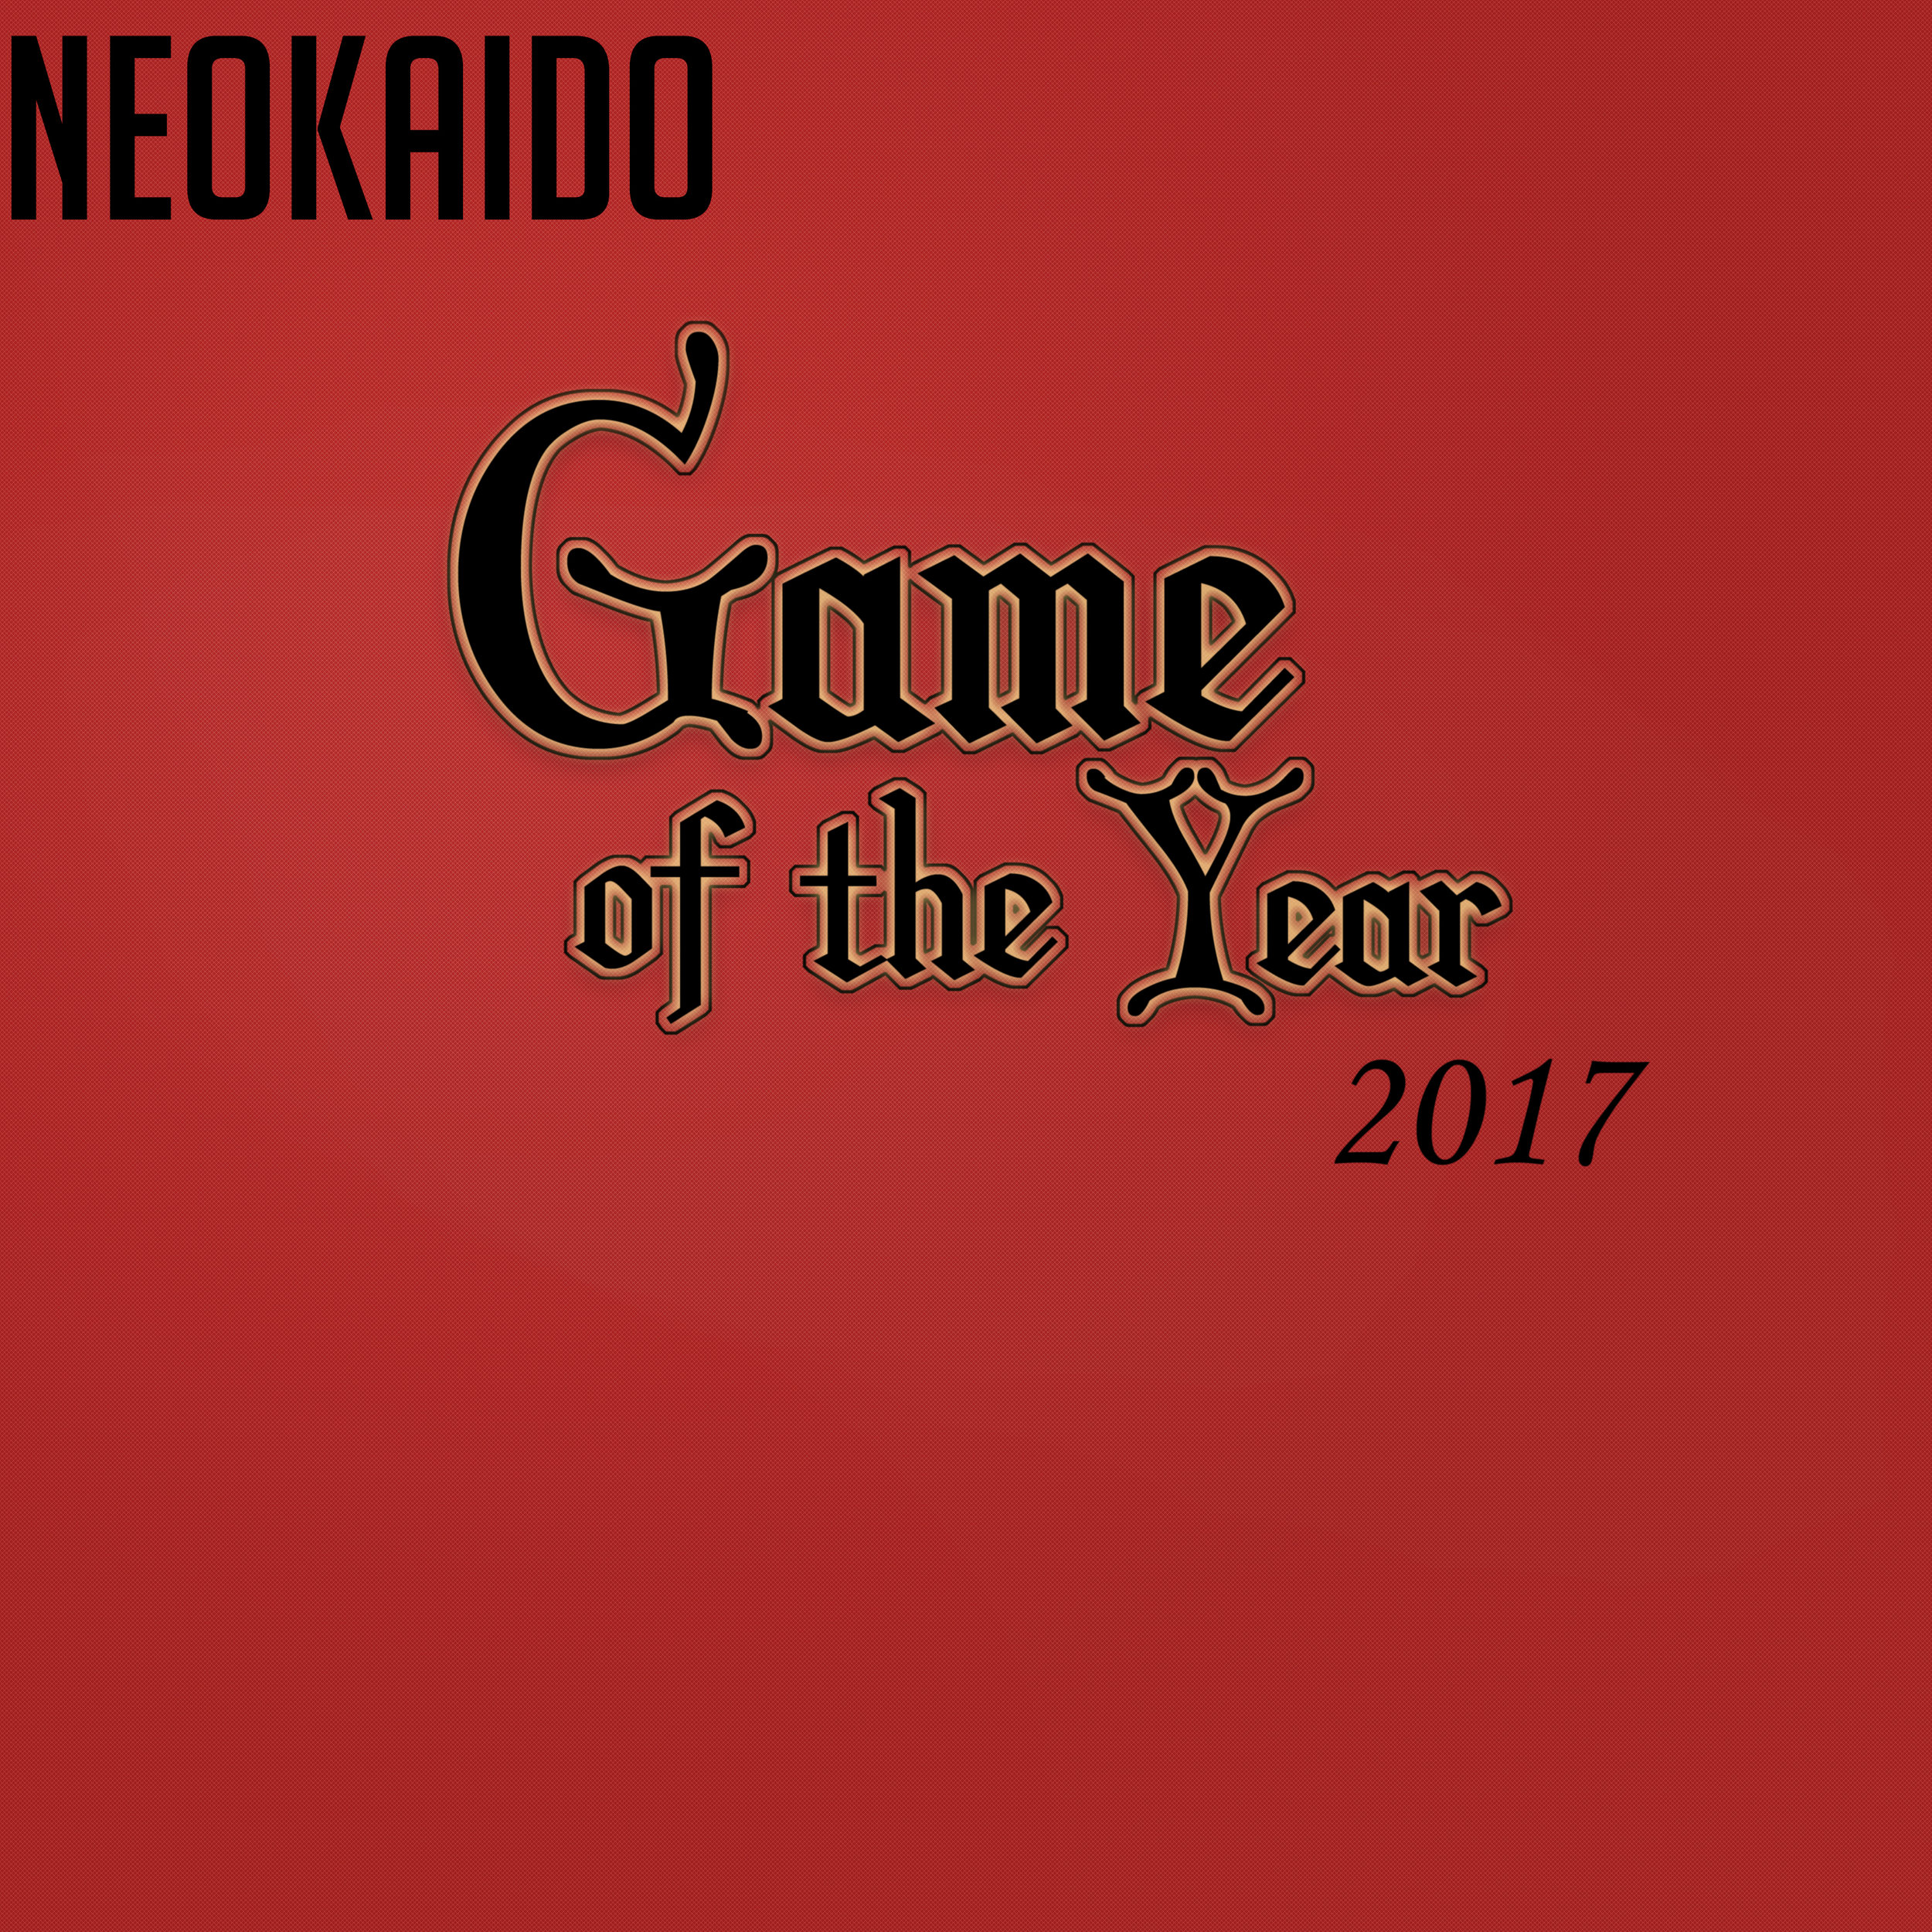 Neokaido Game of the Year 2017 (Part 3) - We tackle the last few categories in day three of Game of the Year, which include: Best Presentation, Biggest Disappointment, Best Music. Enjoy!